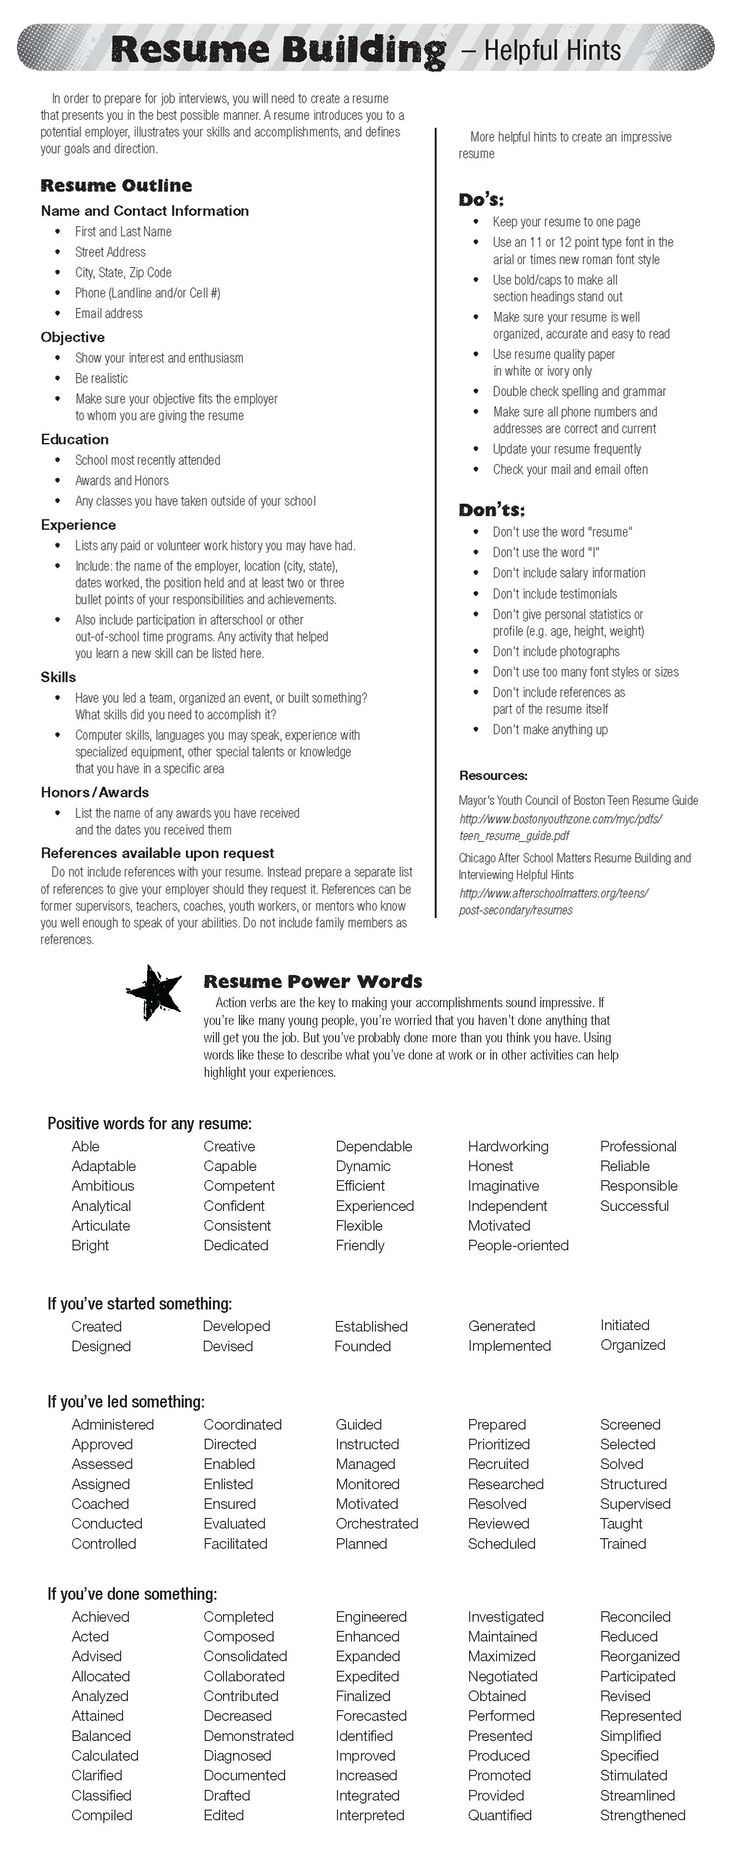 Picnictoimpeachus  Personable  Ideas About Resume On Pinterest  Cv Format Resume Cv And  With Interesting  Ideas About Resume On Pinterest  Cv Format Resume Cv And Resume Templates With Delectable What A Resume Should Look Like Also Program Manager Resume In Addition College Student Resume Examples And Template Resume As Well As Build A Resume Online Additionally Cover Letter For Resume Example From Pinterestcom With Picnictoimpeachus  Interesting  Ideas About Resume On Pinterest  Cv Format Resume Cv And  With Delectable  Ideas About Resume On Pinterest  Cv Format Resume Cv And Resume Templates And Personable What A Resume Should Look Like Also Program Manager Resume In Addition College Student Resume Examples From Pinterestcom